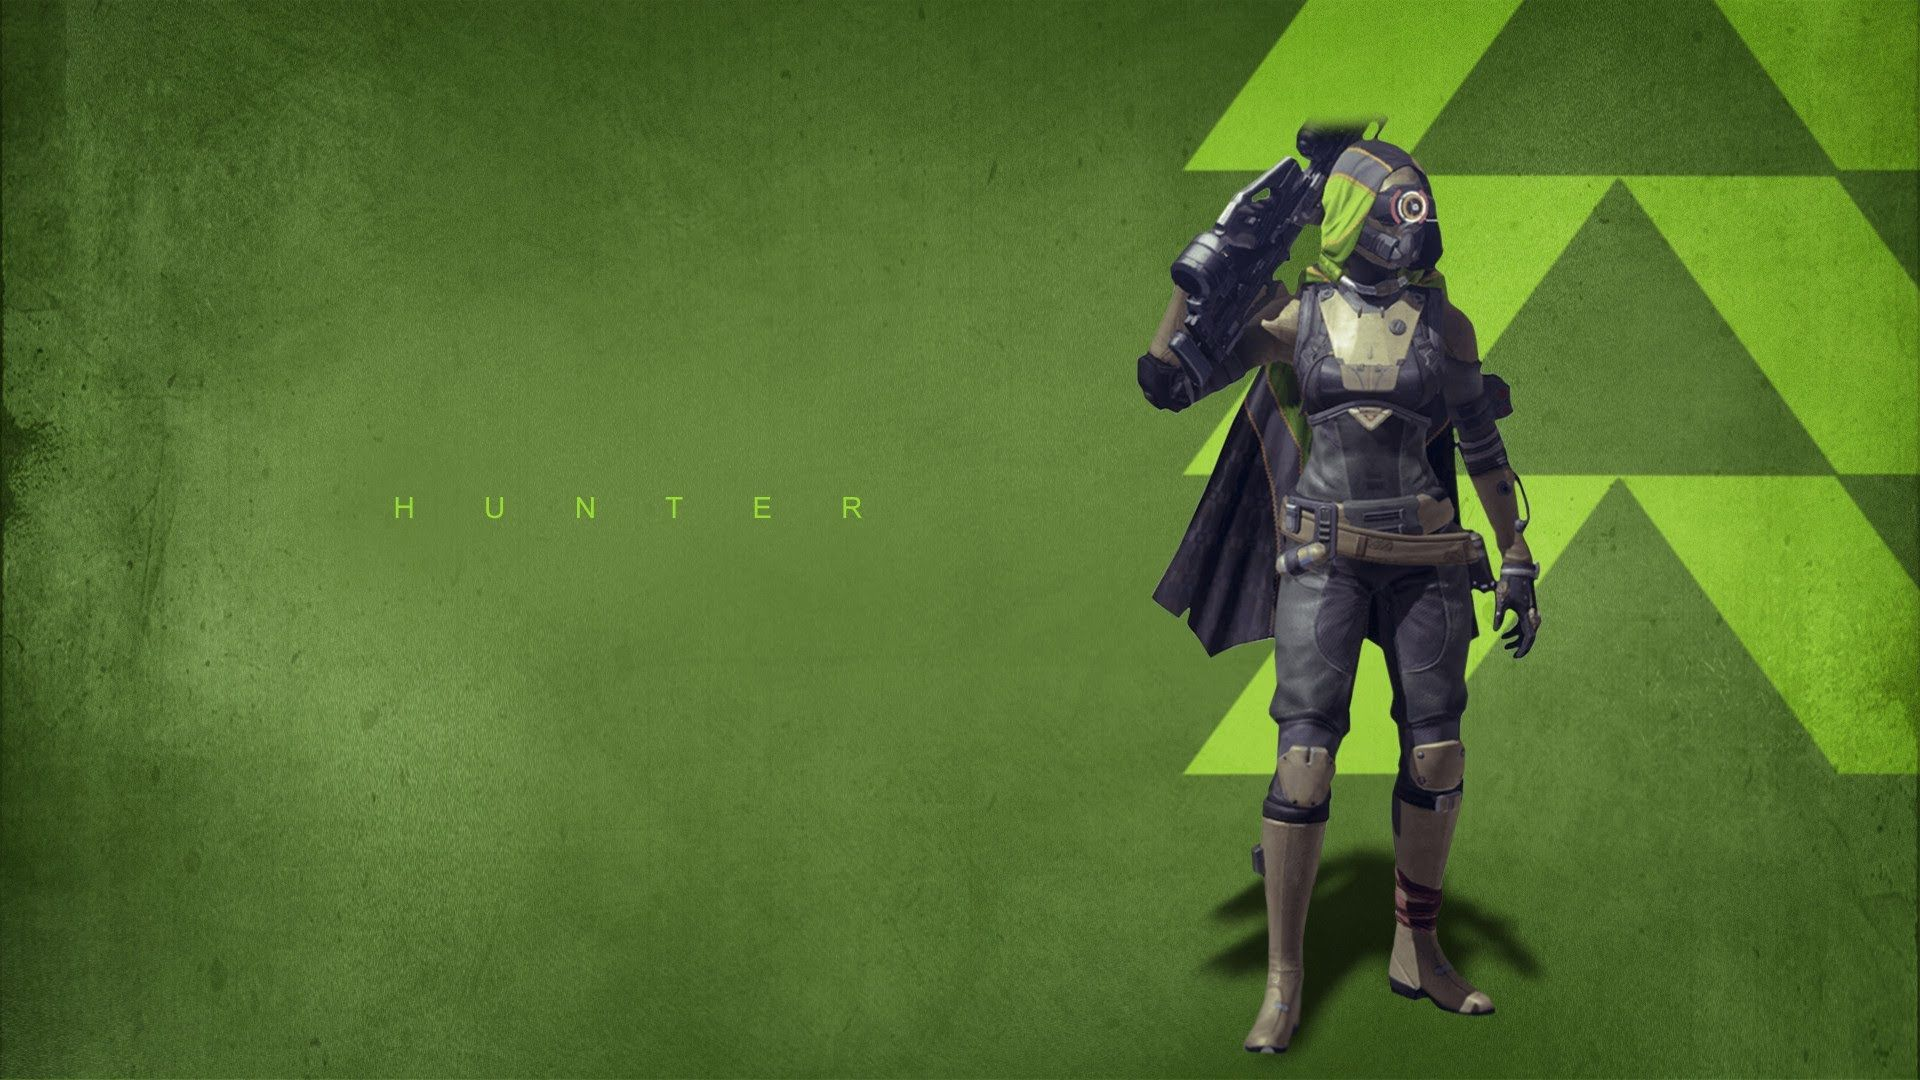 Hunter Top FPS Game 2014 Destiny HD Wallpaper Destiny